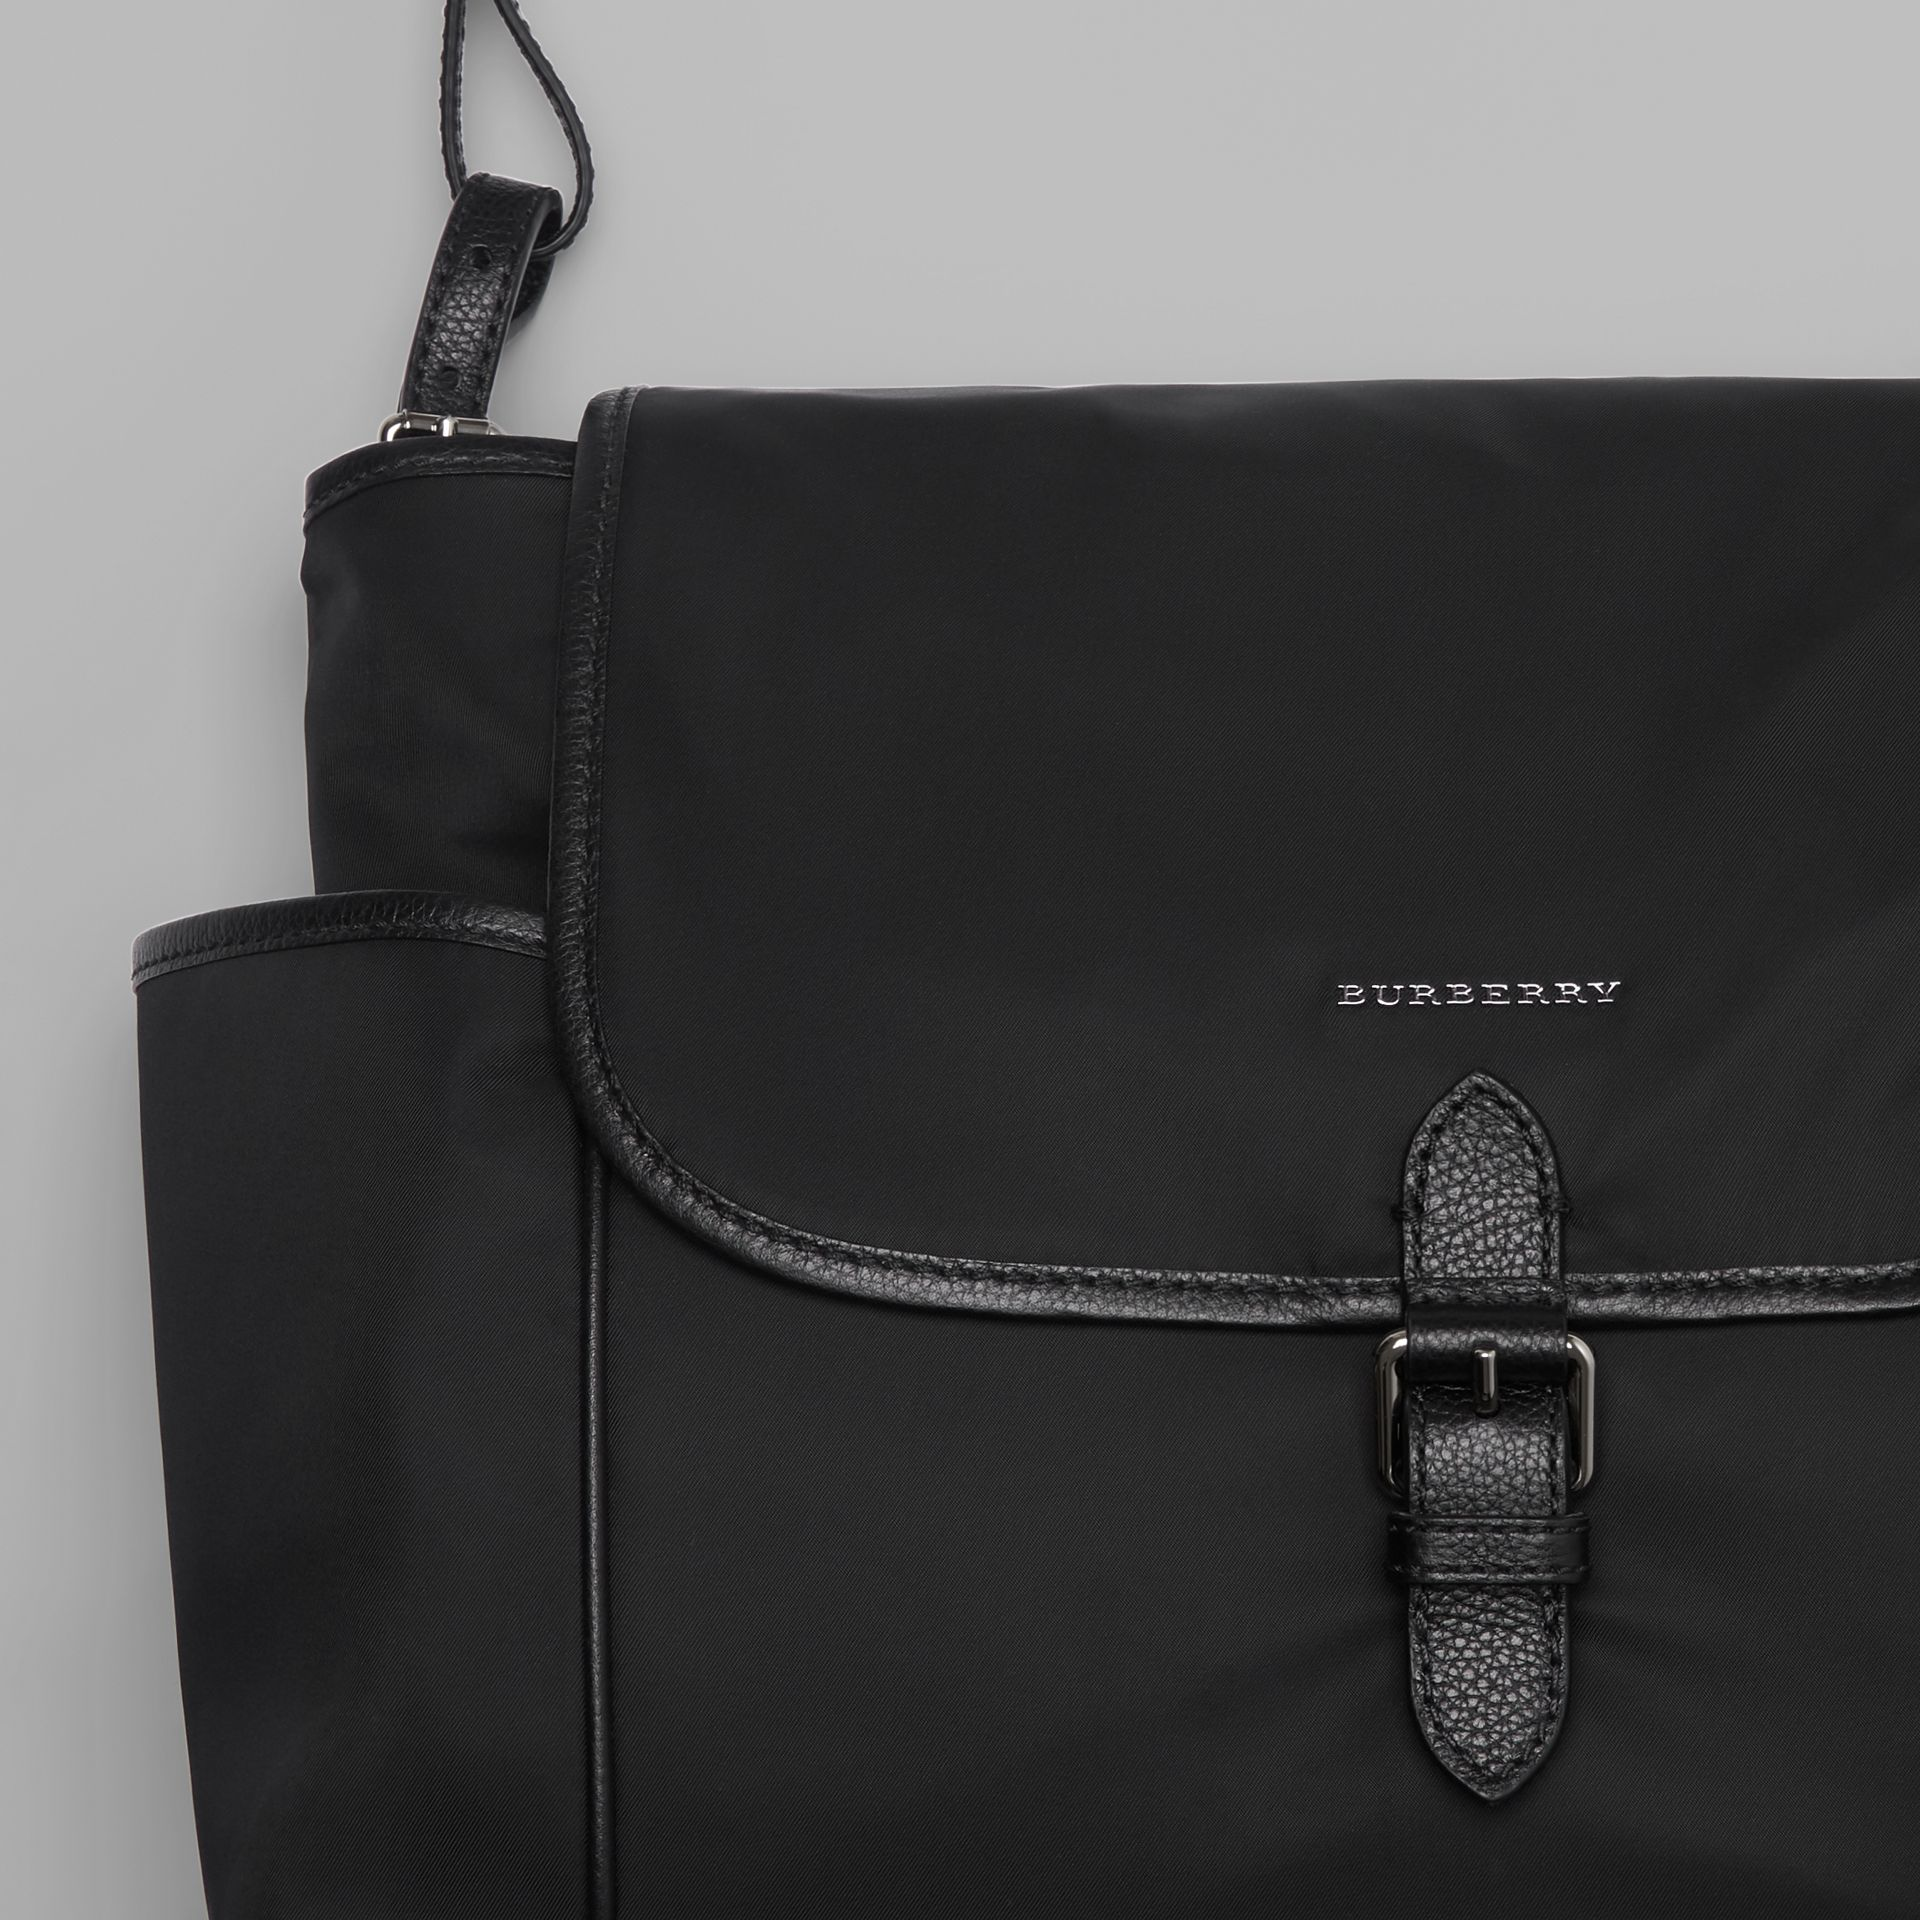 Leather Trim Baby Changing Shoulder Bag in Black - Children | Burberry - gallery image 1